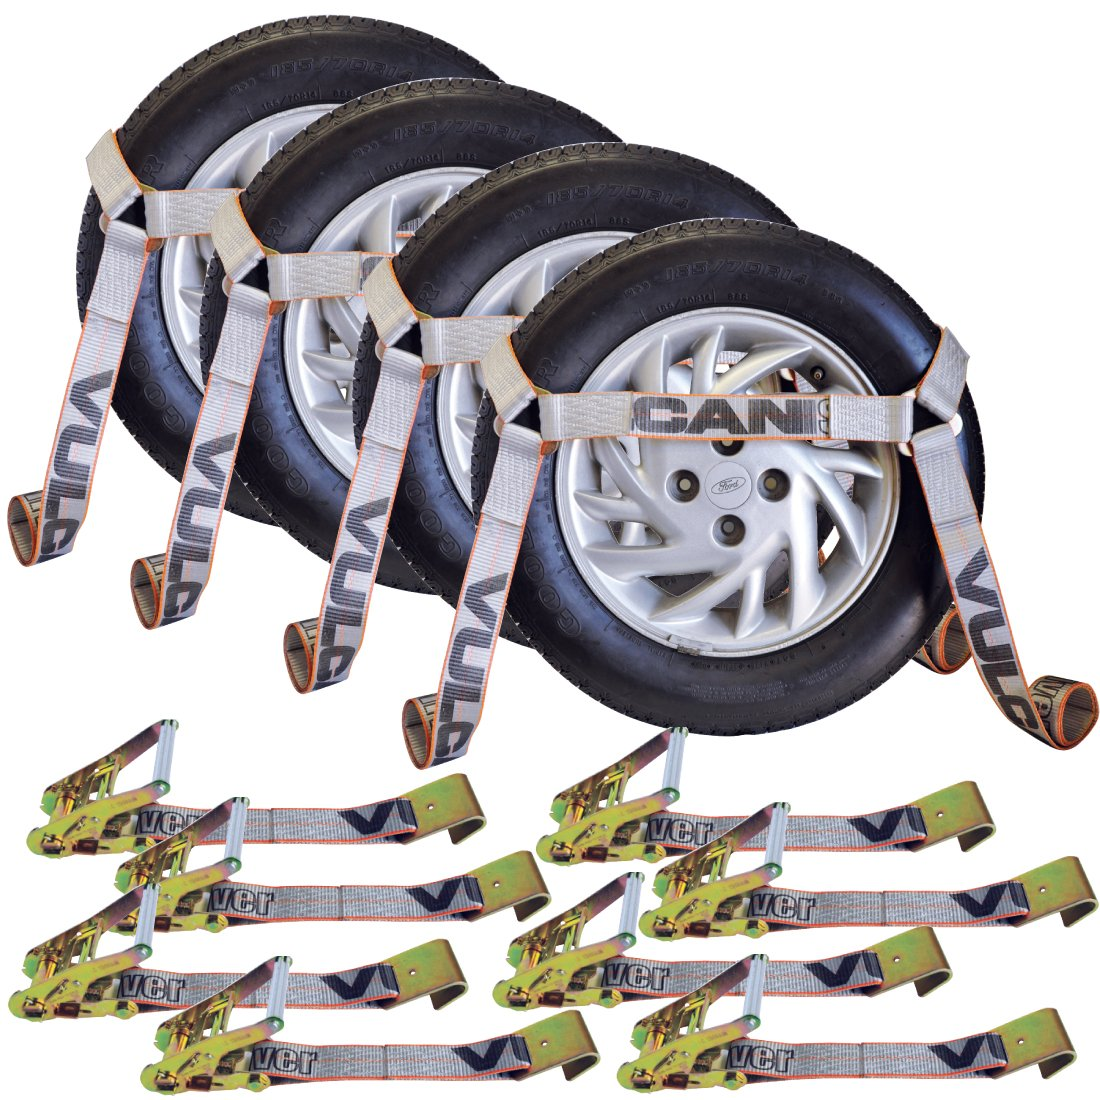 Vulcan Silver Series Flat Bed Side Rail Auto Tie Down With Flat Hooks - 3300 lbs. SWL (Pack of 4)